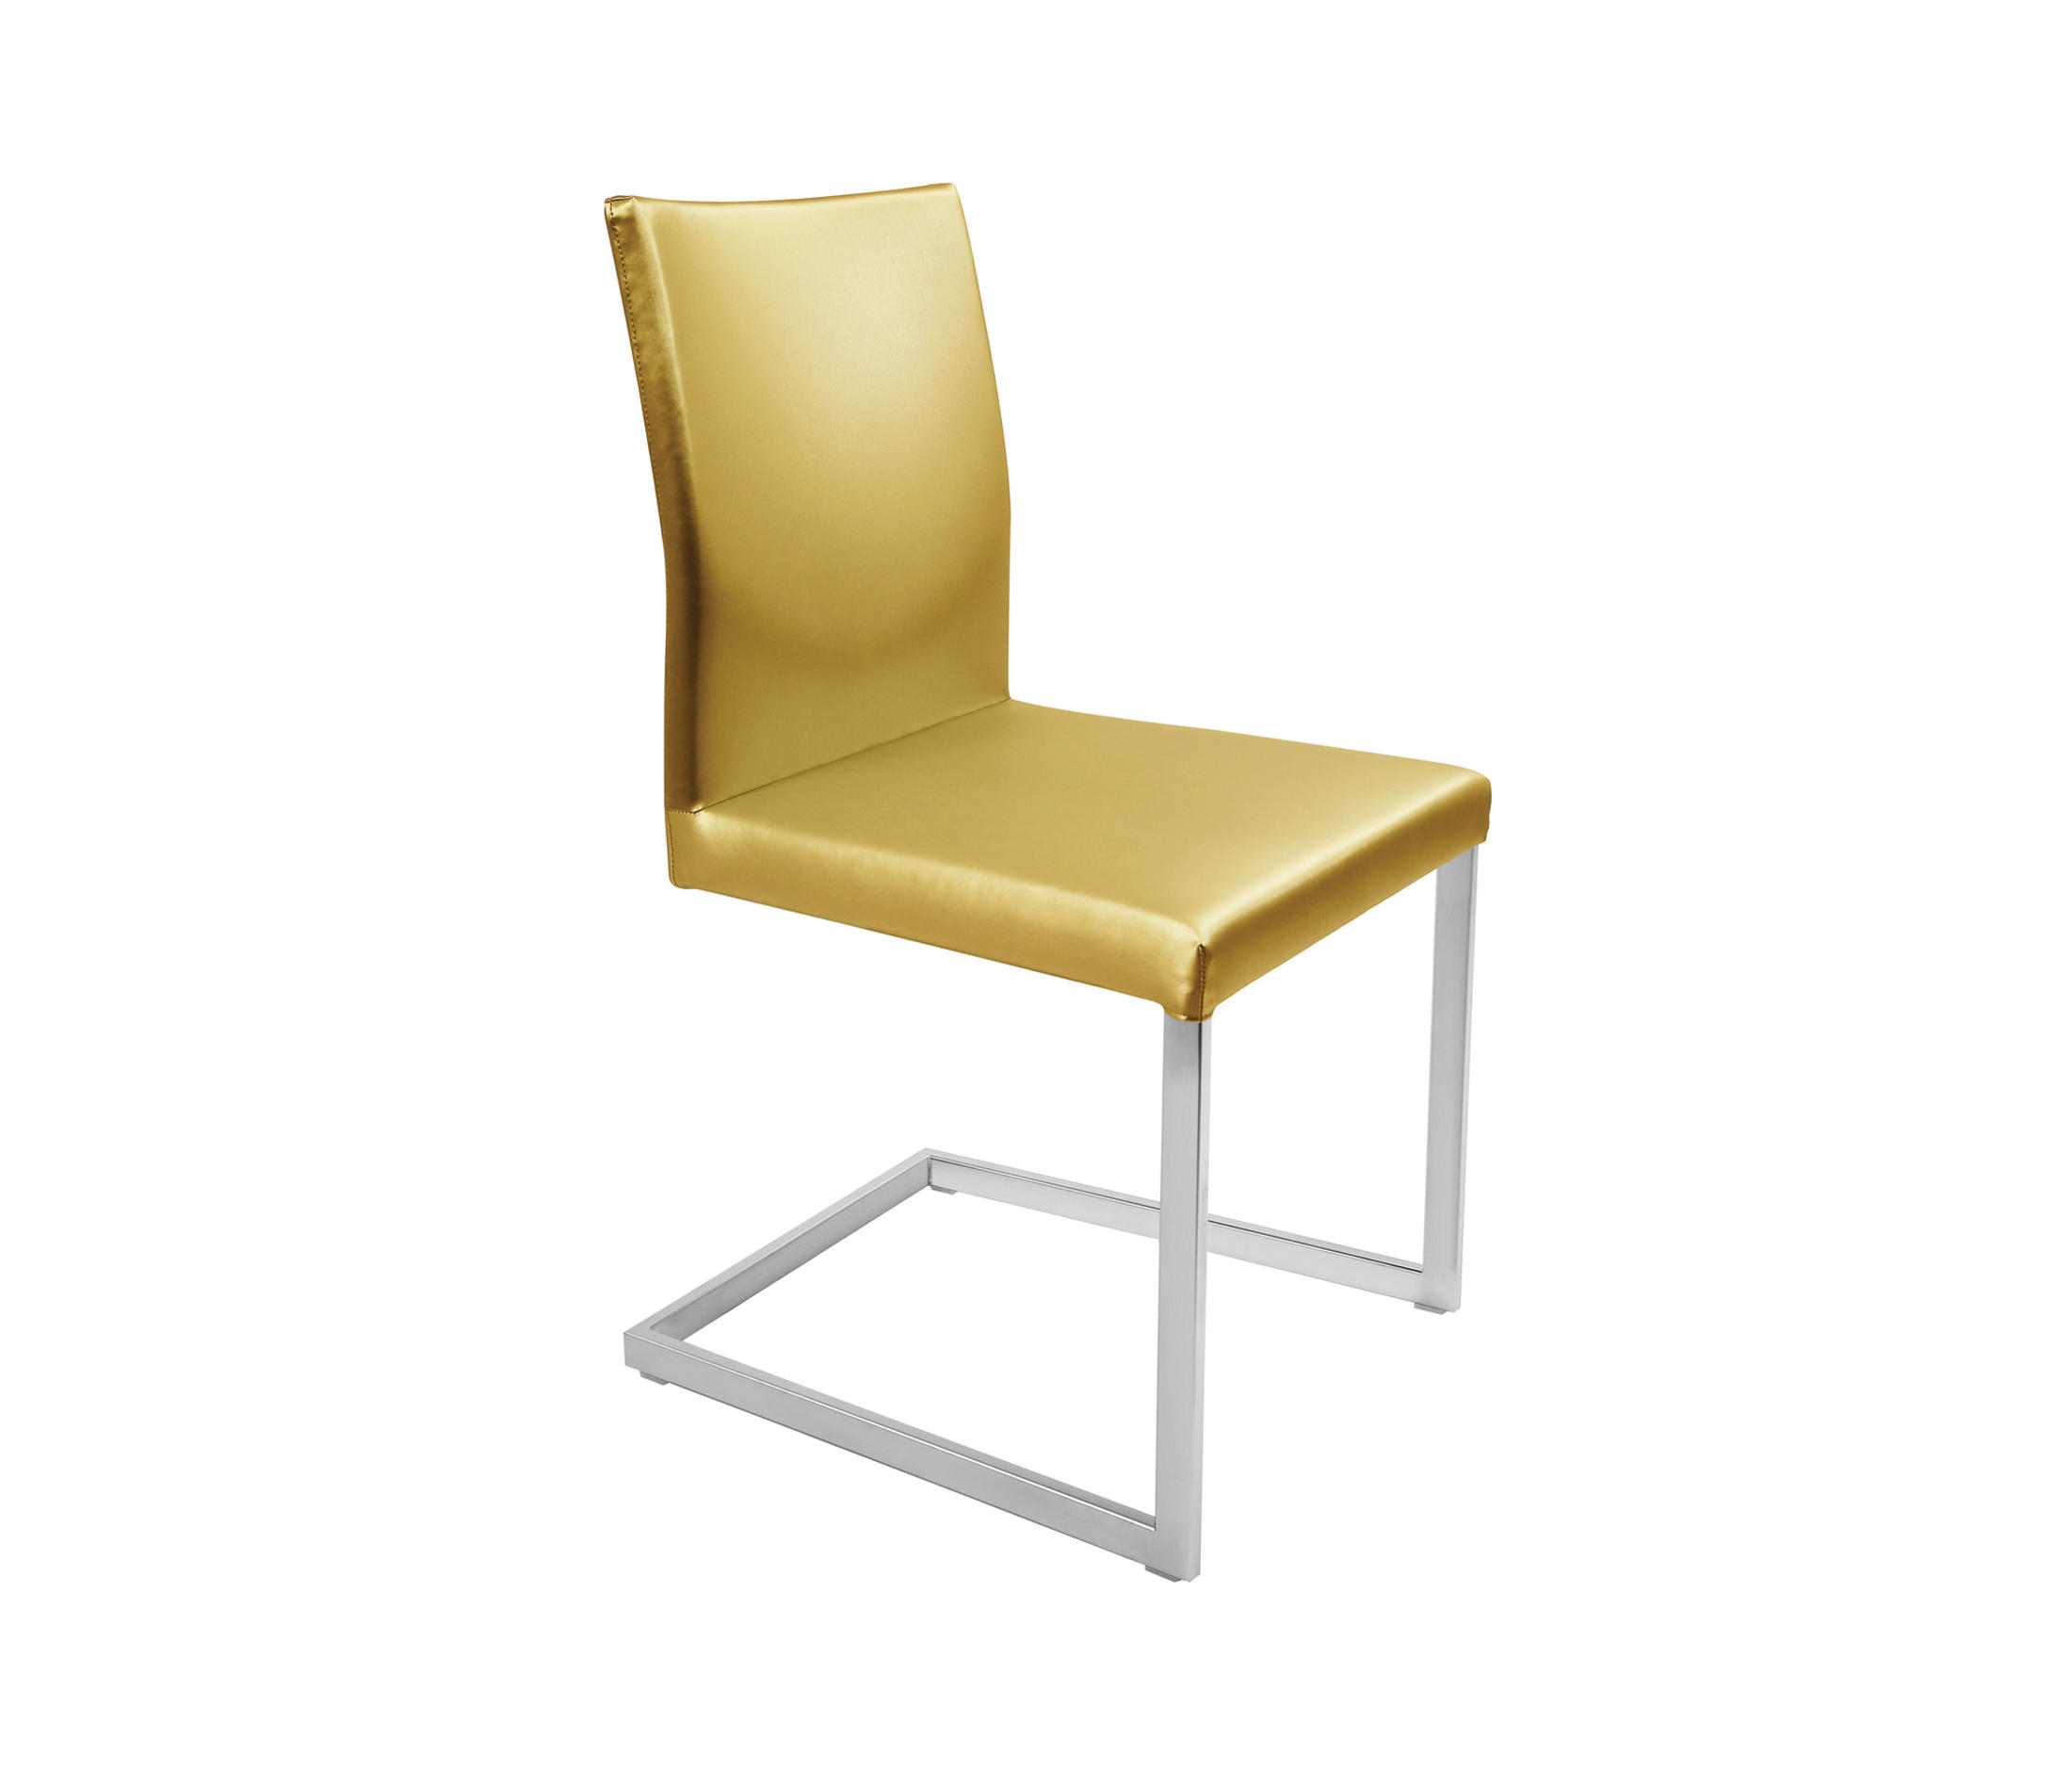 Feel Chair Chairs From Kff Architonic